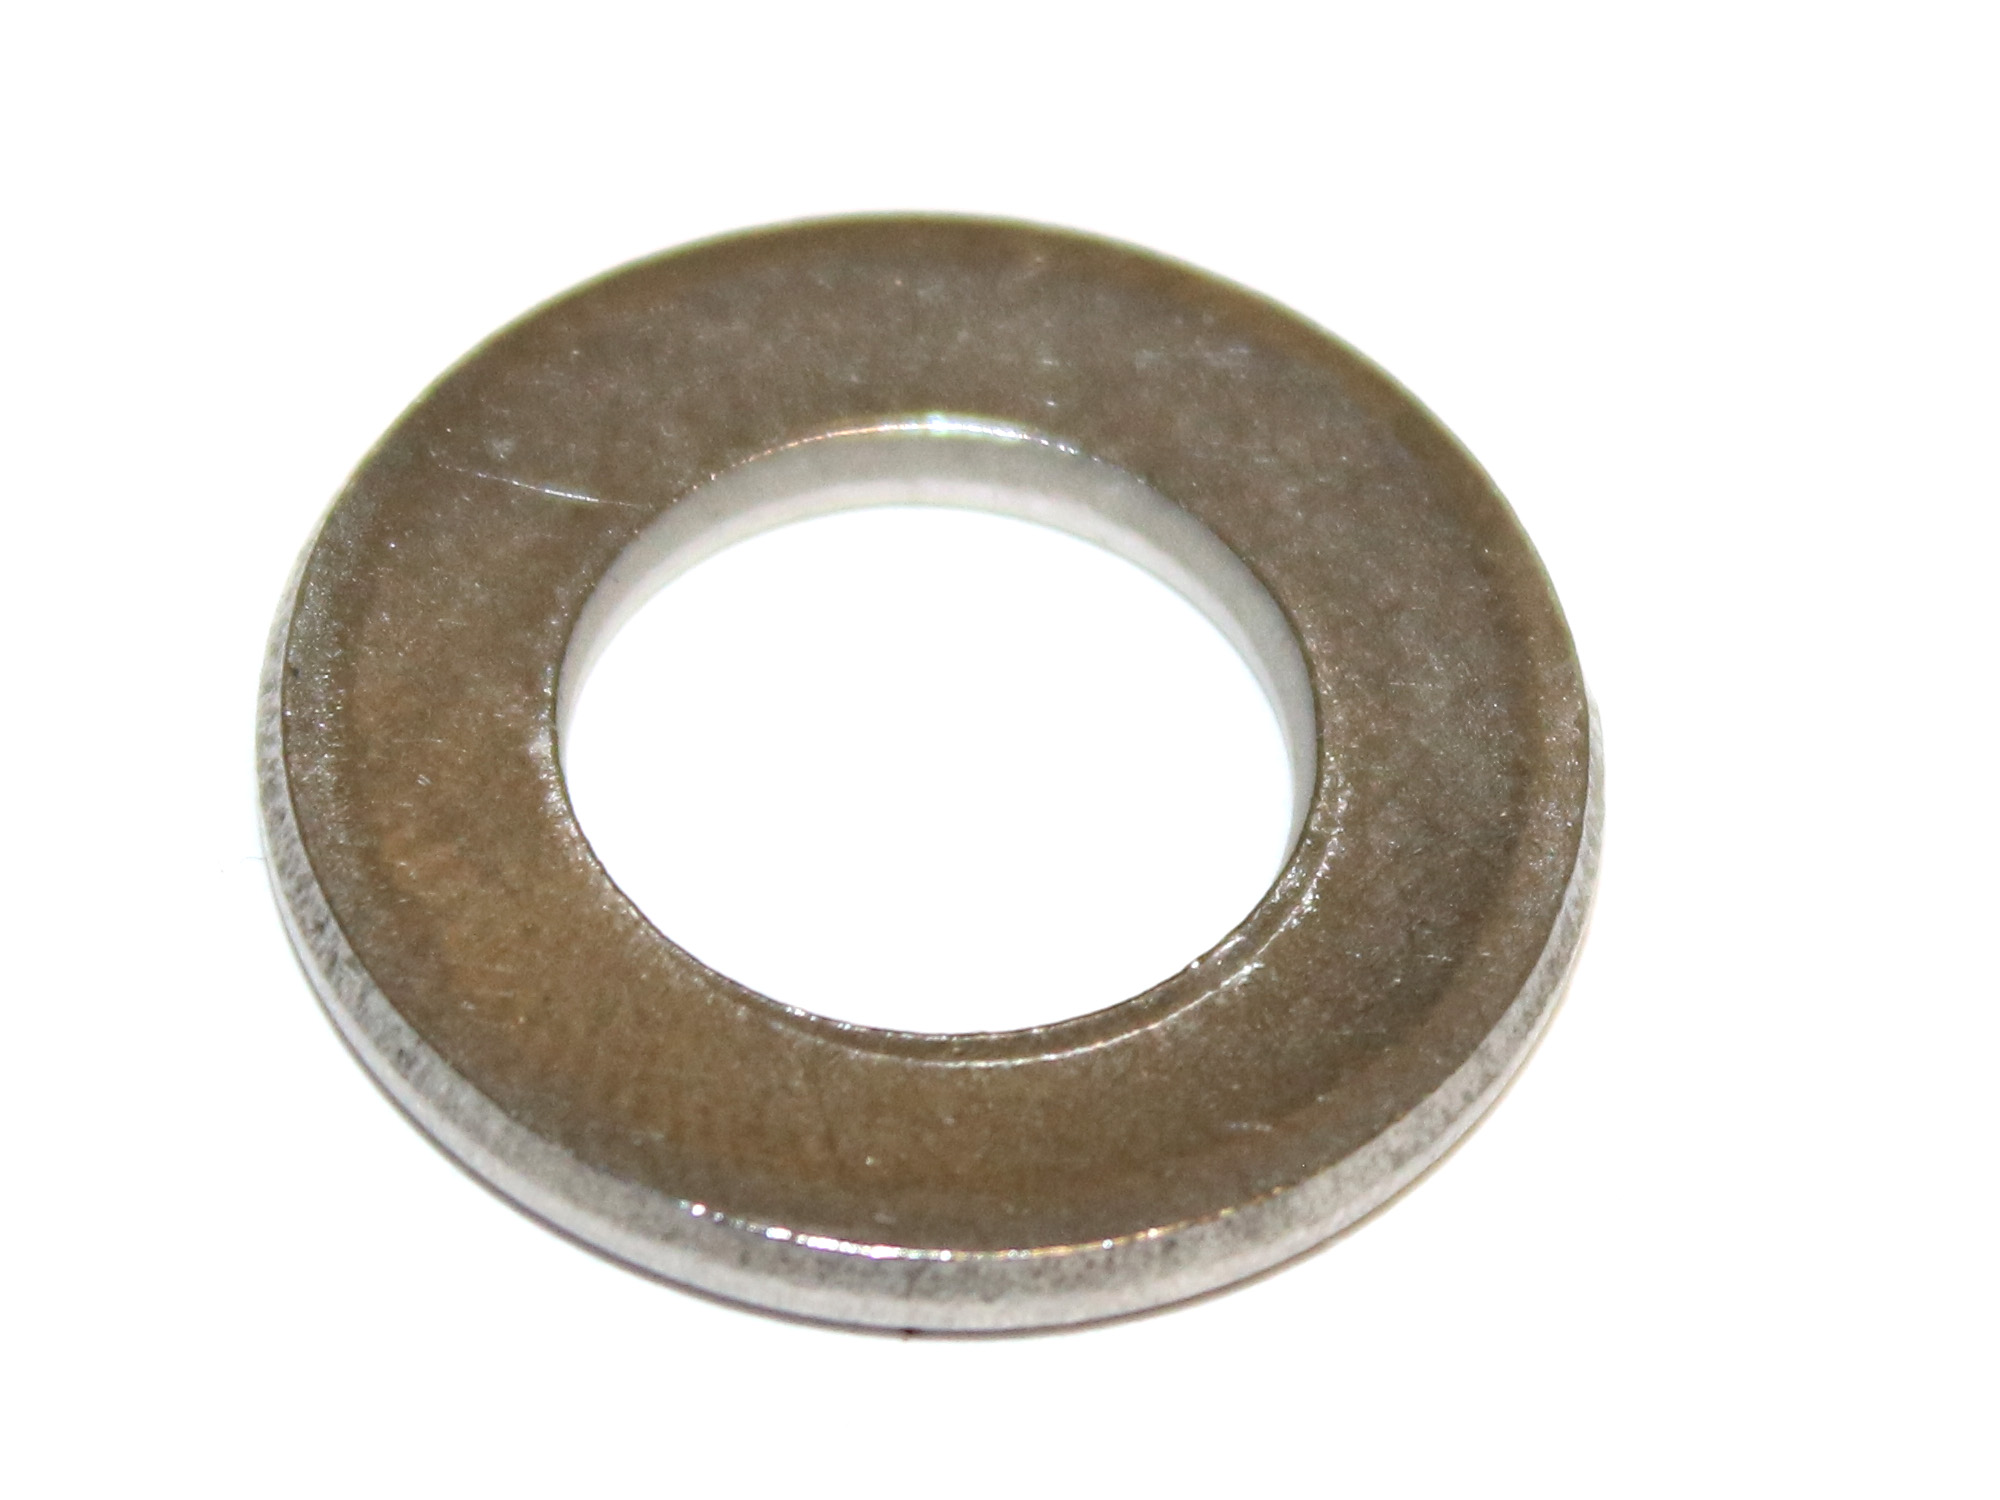 rvs sluitring M10 10,5 x 20 x 2mm